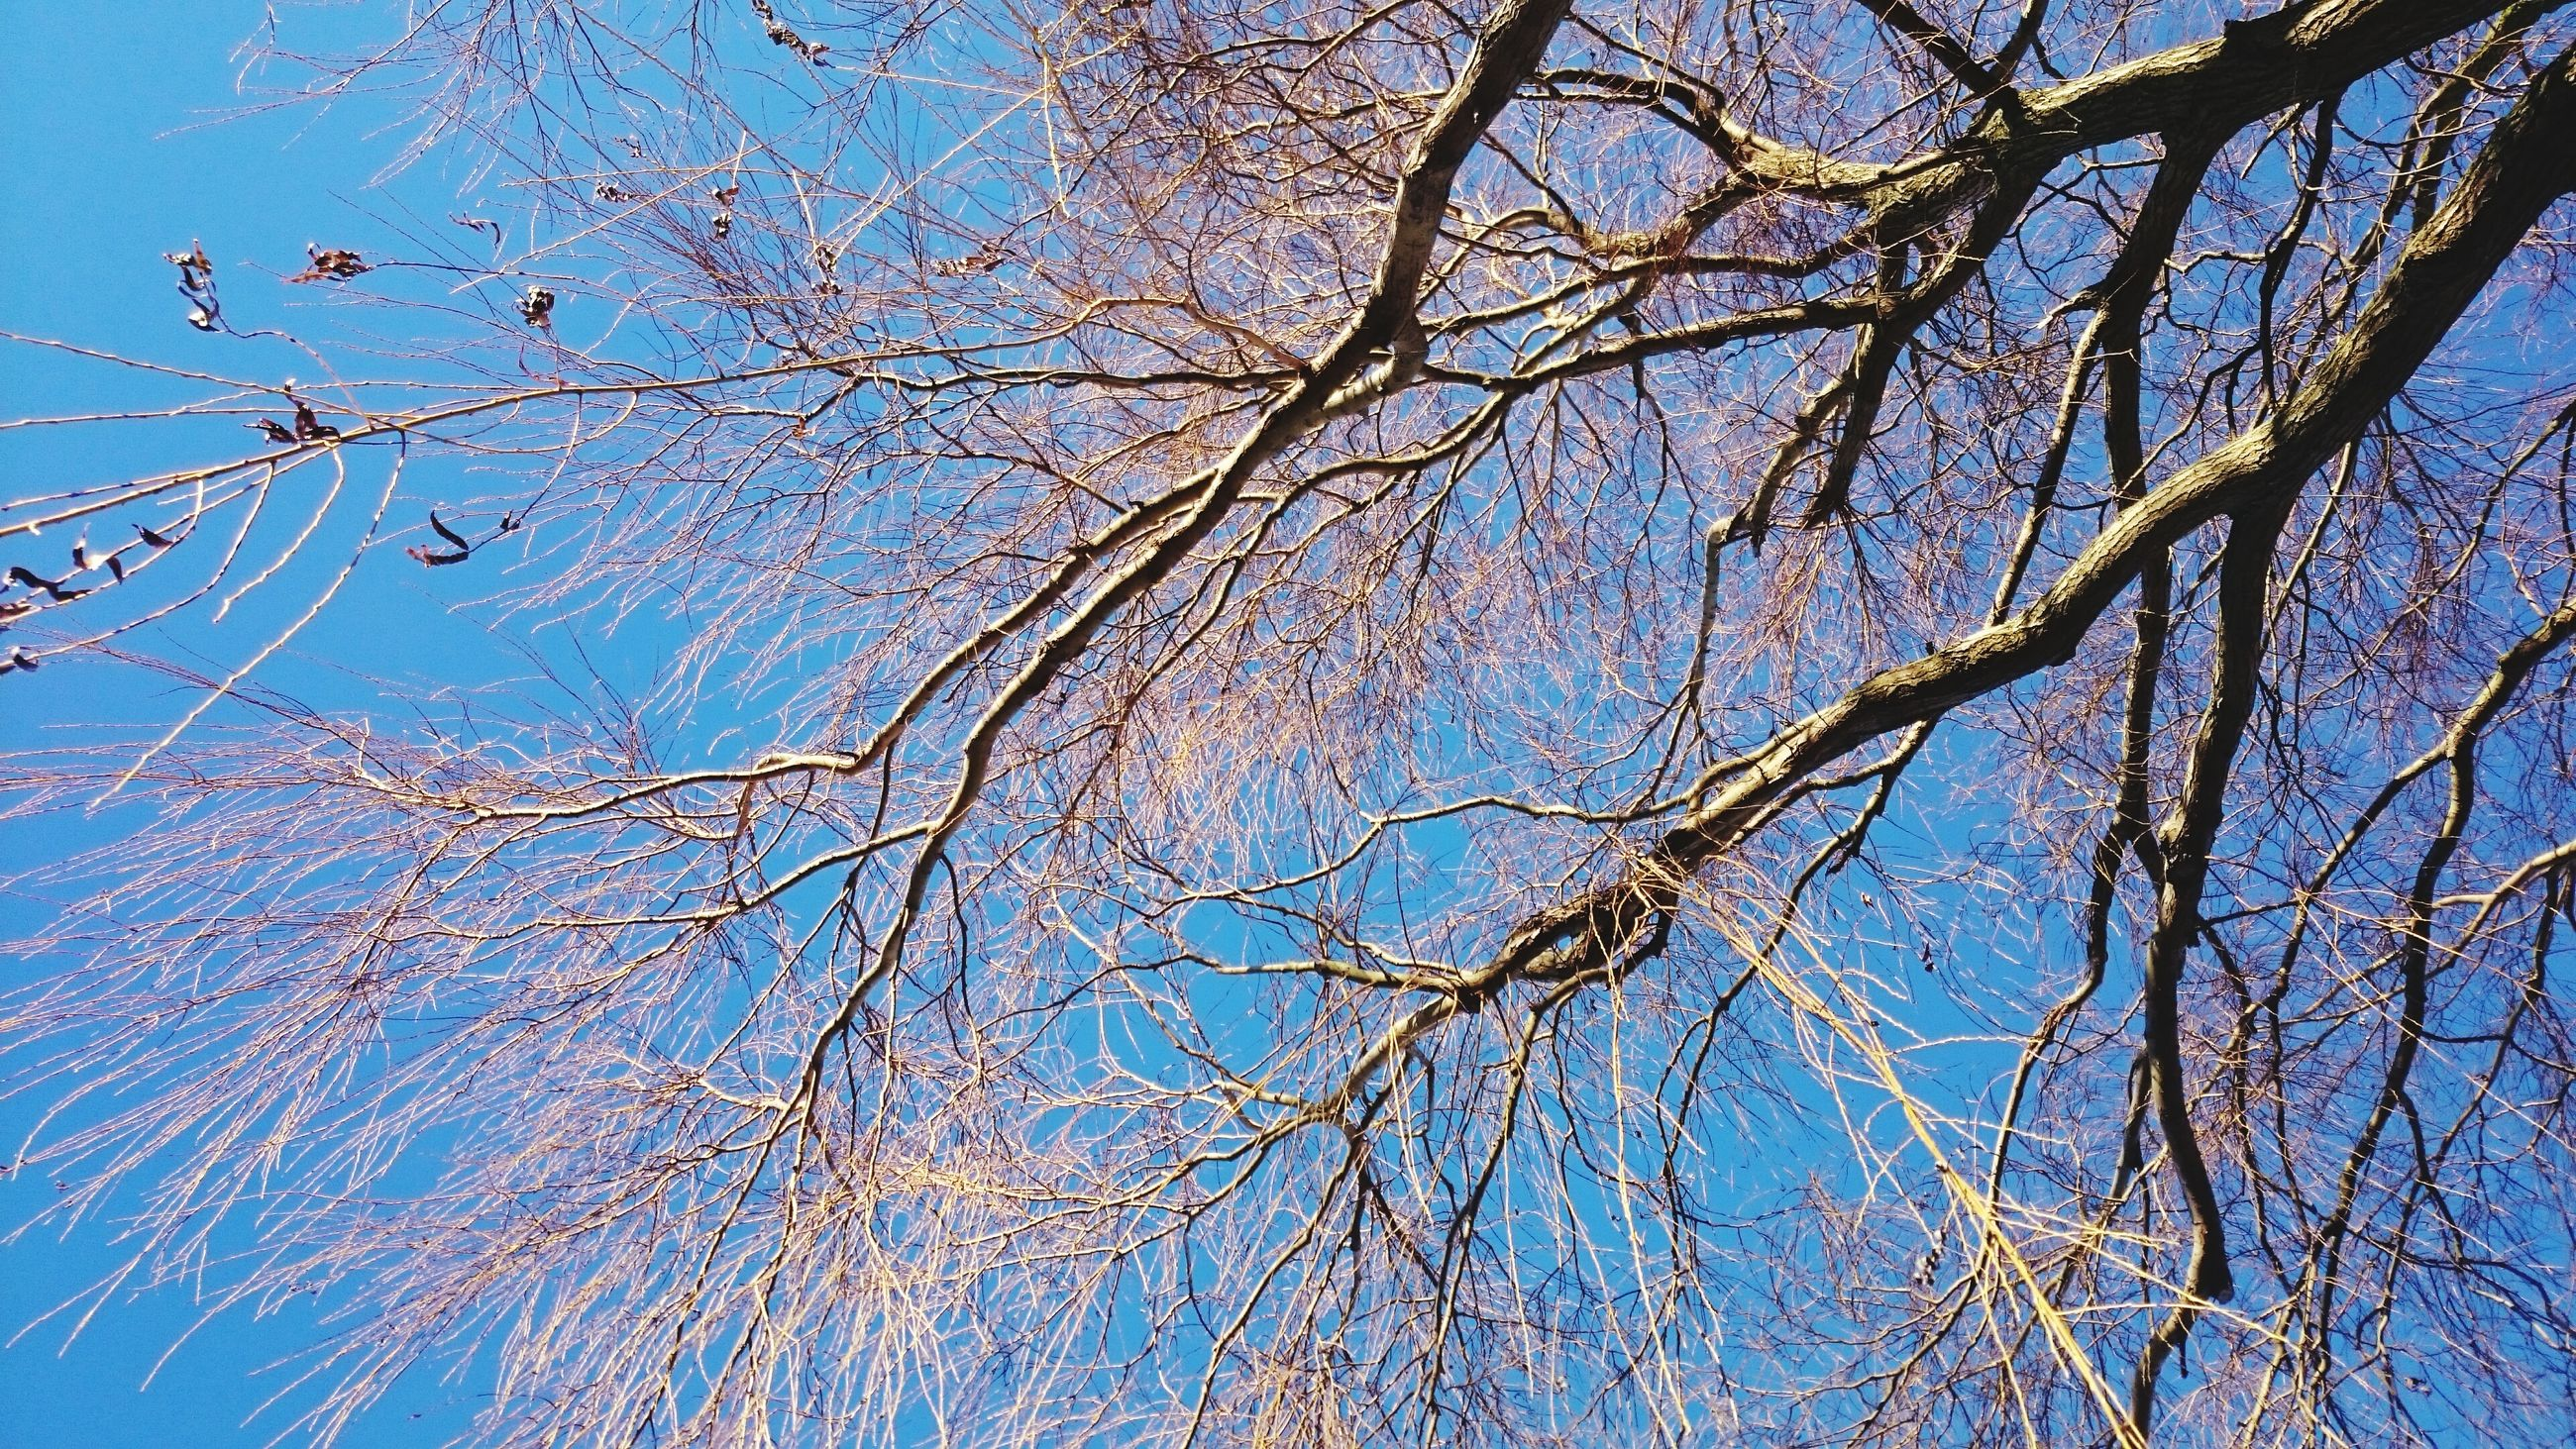 blue, branch, low angle view, bare tree, tree, clear sky, nature, beauty in nature, growth, tranquility, sky, close-up, backgrounds, day, outdoors, full frame, scenics, no people, water, sunlight